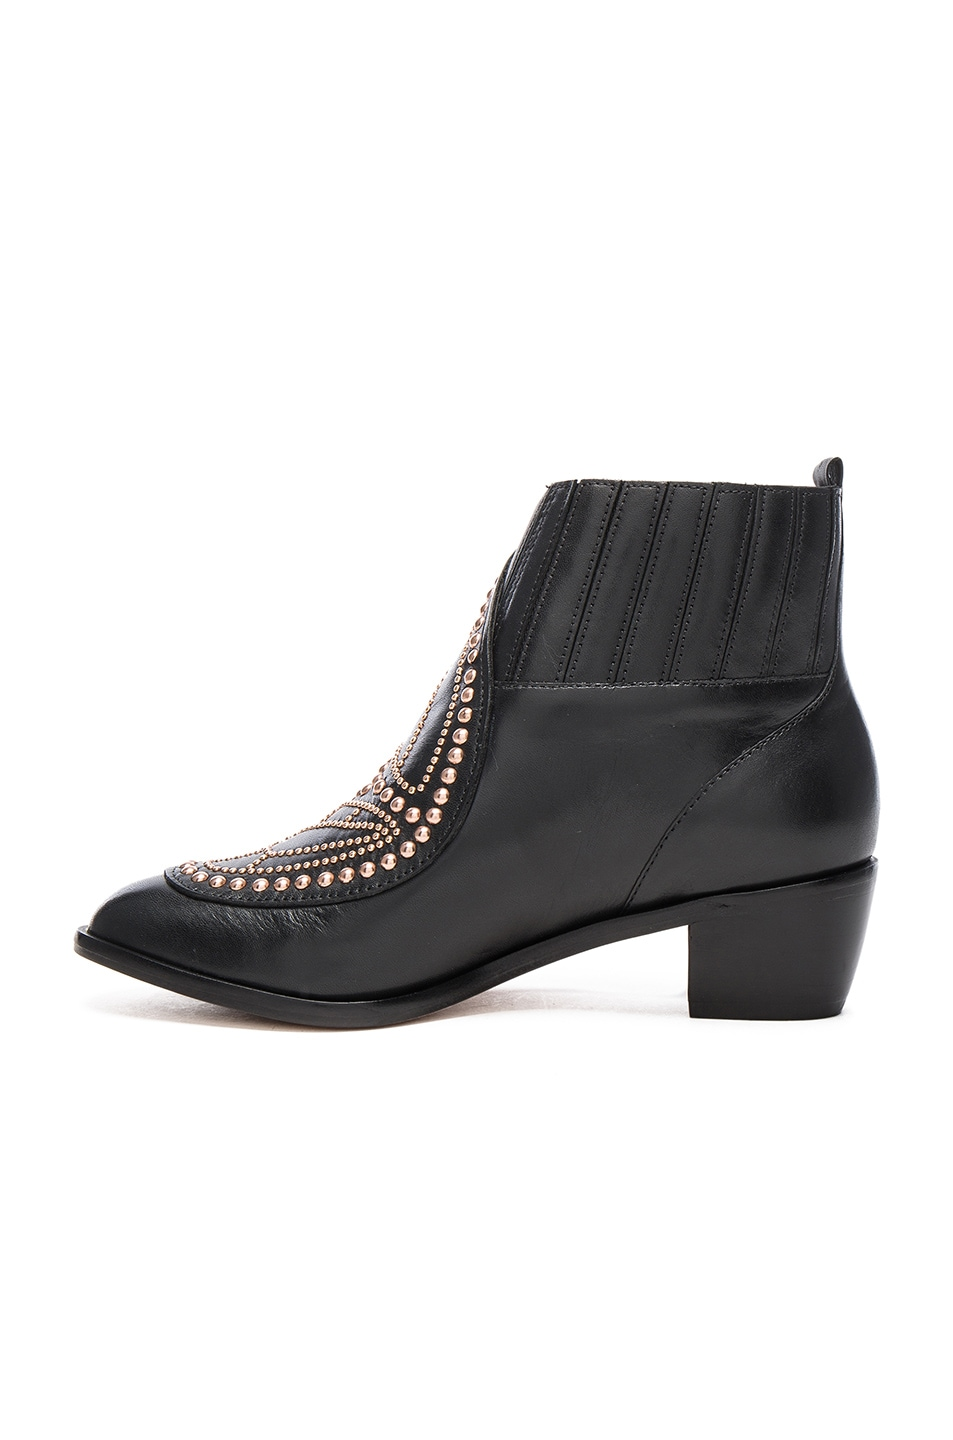 Image 5 of Sophia Webster Karina Butterfly Boots in Black